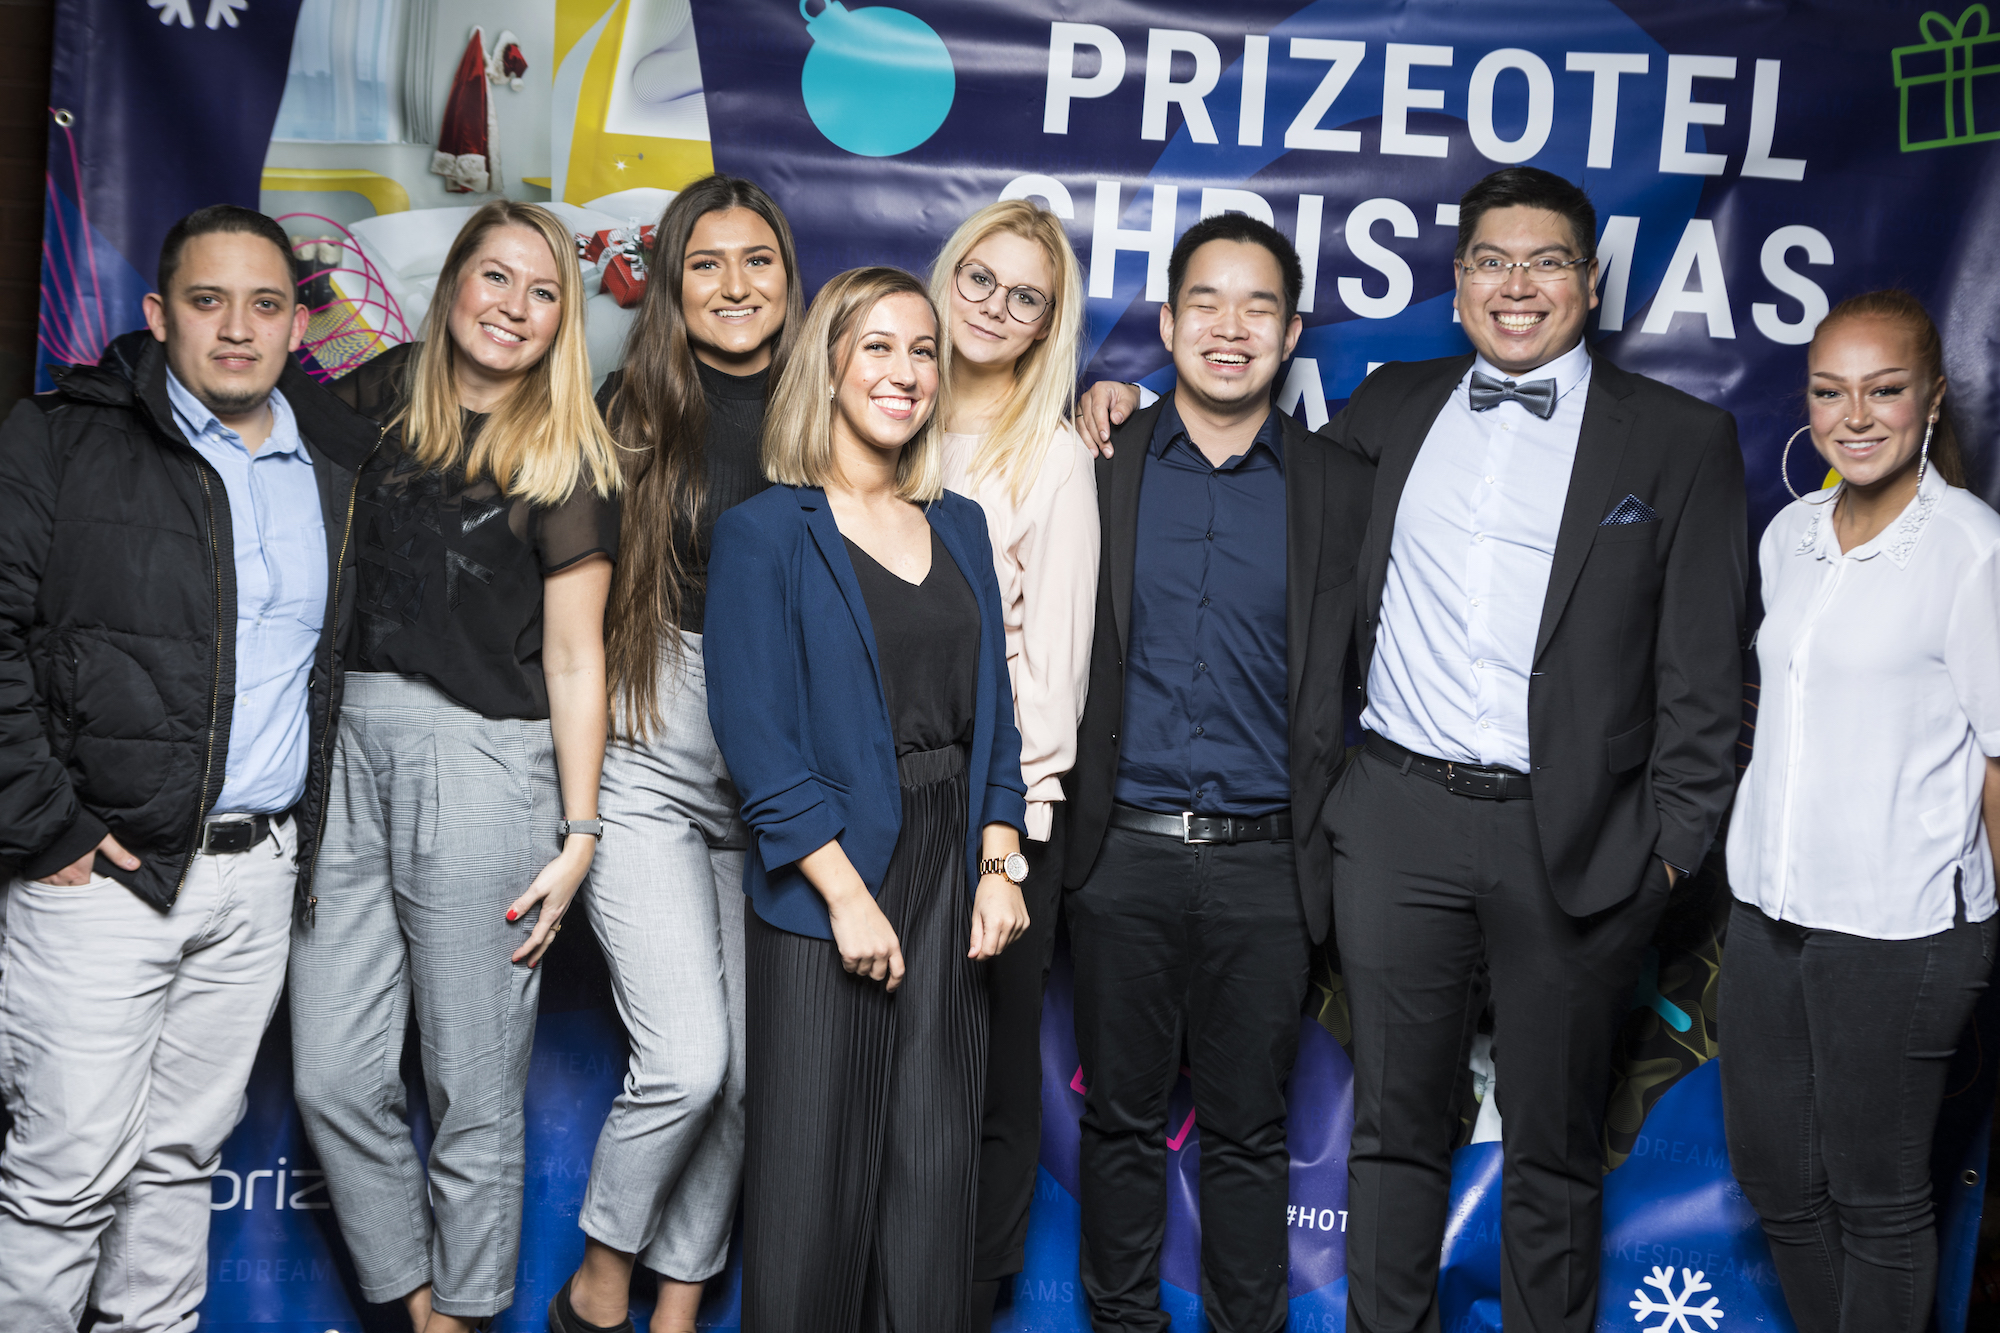 Student internship at prizeotel